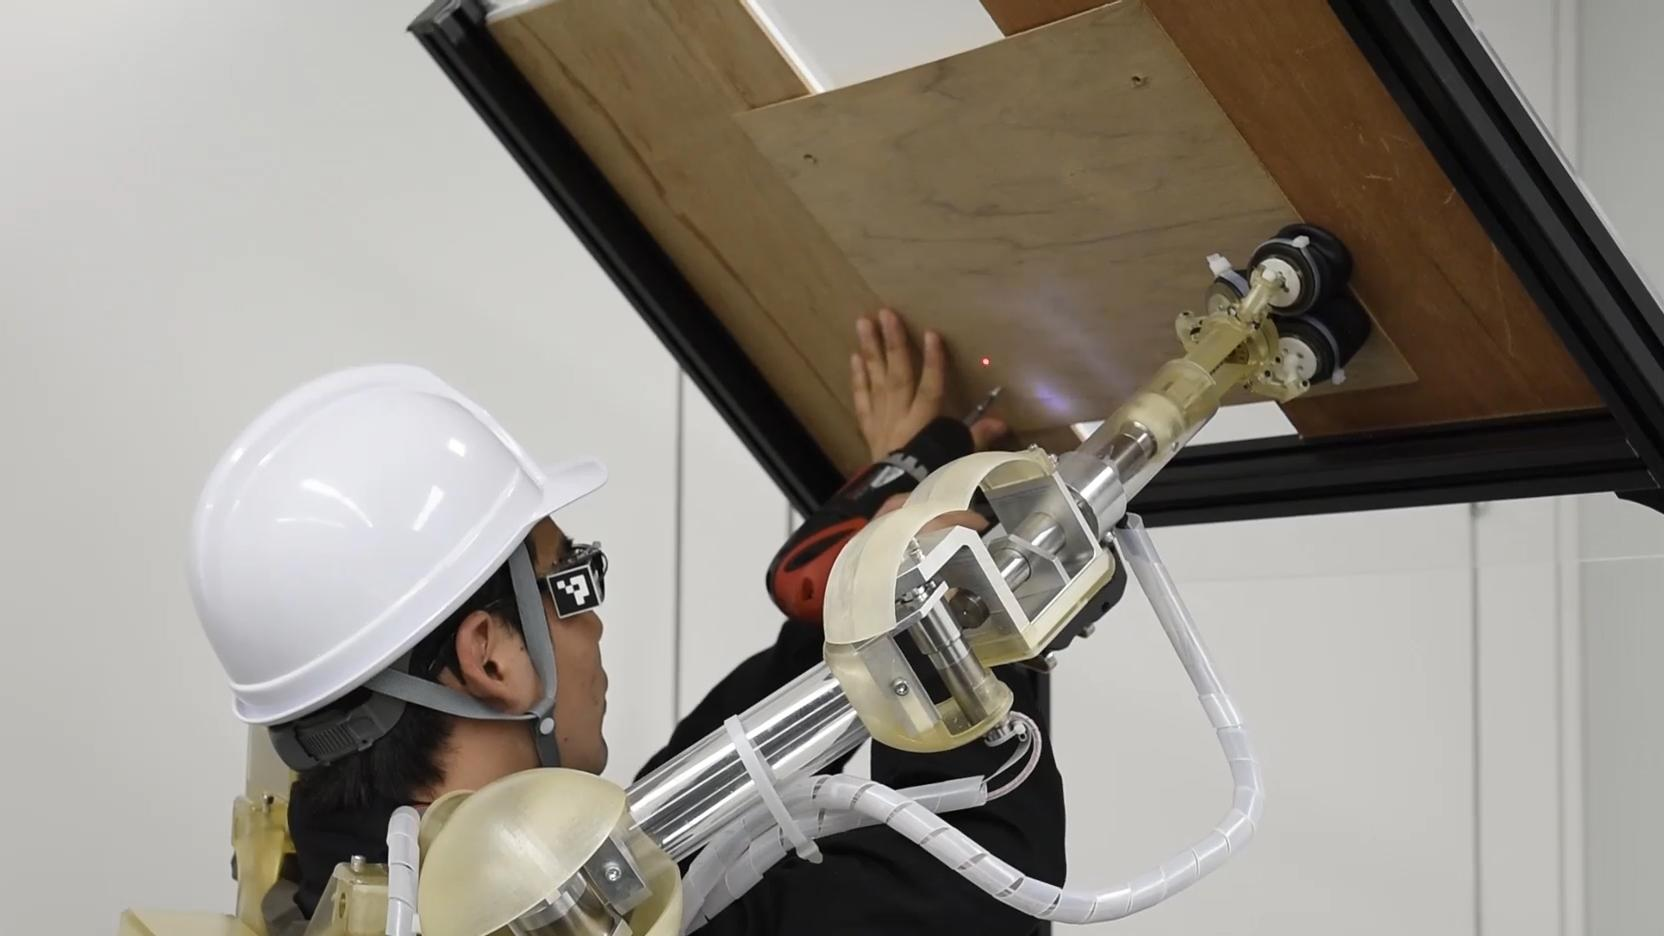 Photo: The demonstration of the 3rd Arm by holding in place and screwing in a ceiling panel